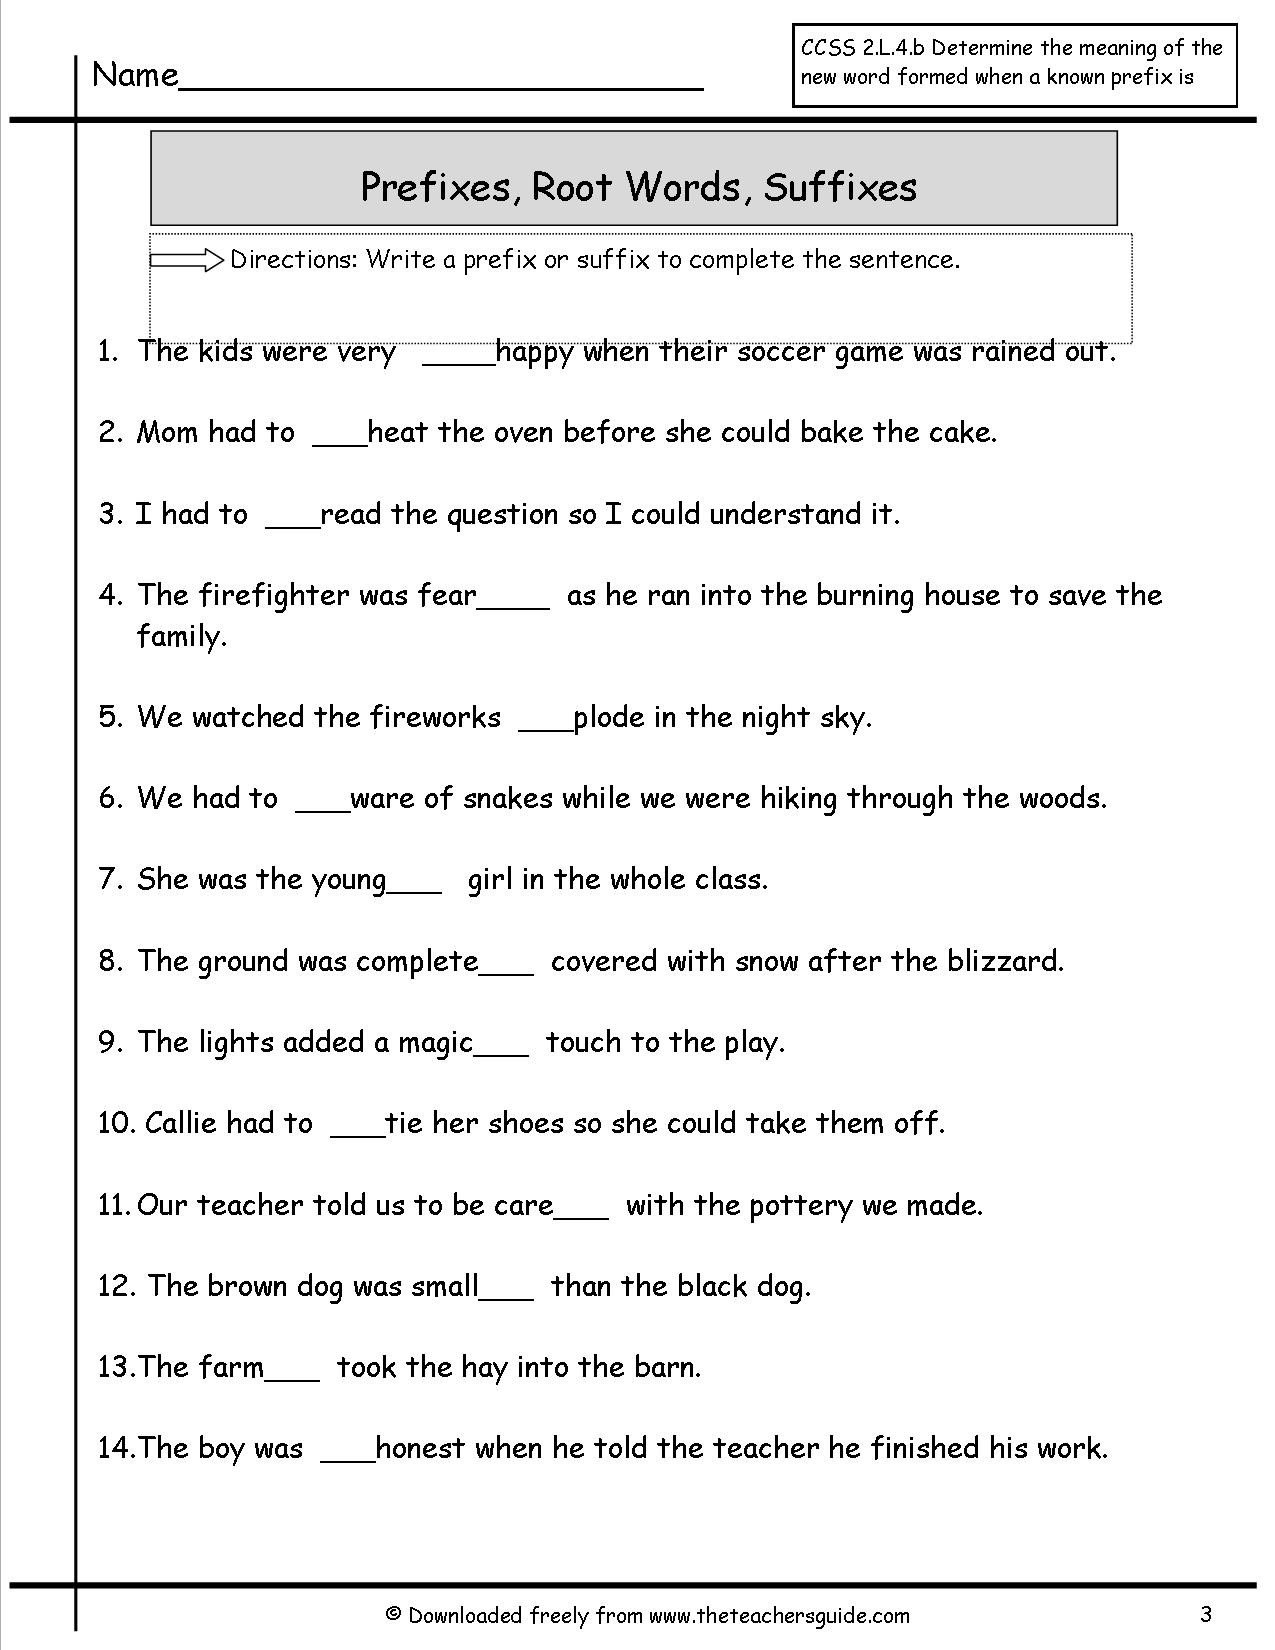 Free Prefix and Suffix Worksheet Awesome Prefixes and Suffixes Worksheet